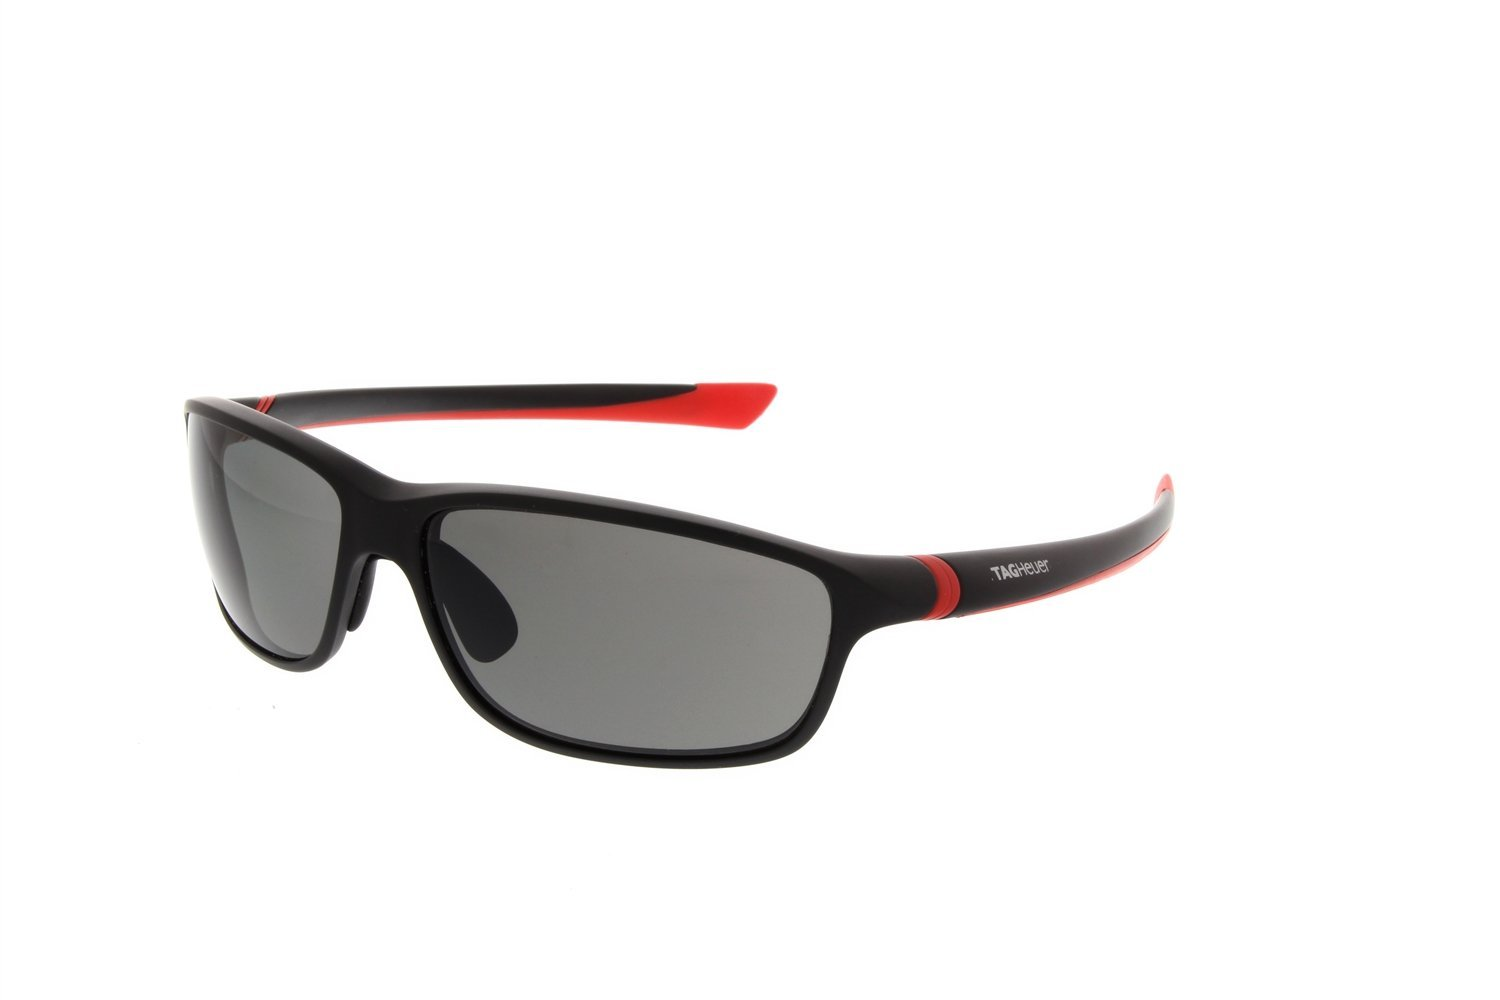 10777f216efc Get Quotations · TAG Heuer 27 Degree Matte Black Red Sunglasses Polarized  Lens 6021 902